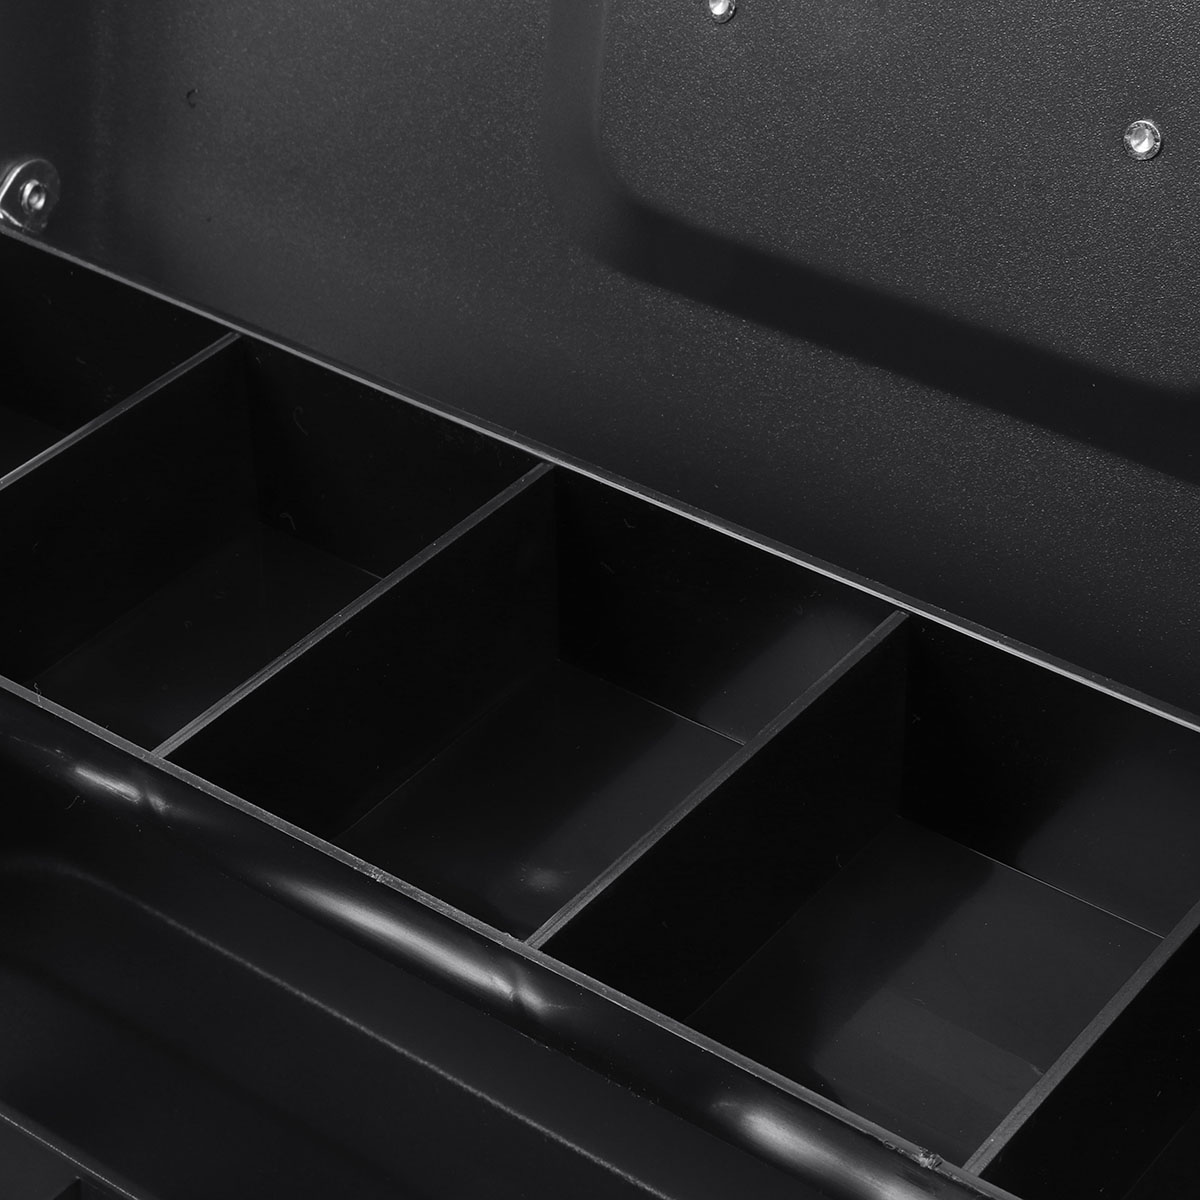 4 Bill 5 Coin Cash Drawer Tray Storage Box for Cashier Money Security Lock Safe Box